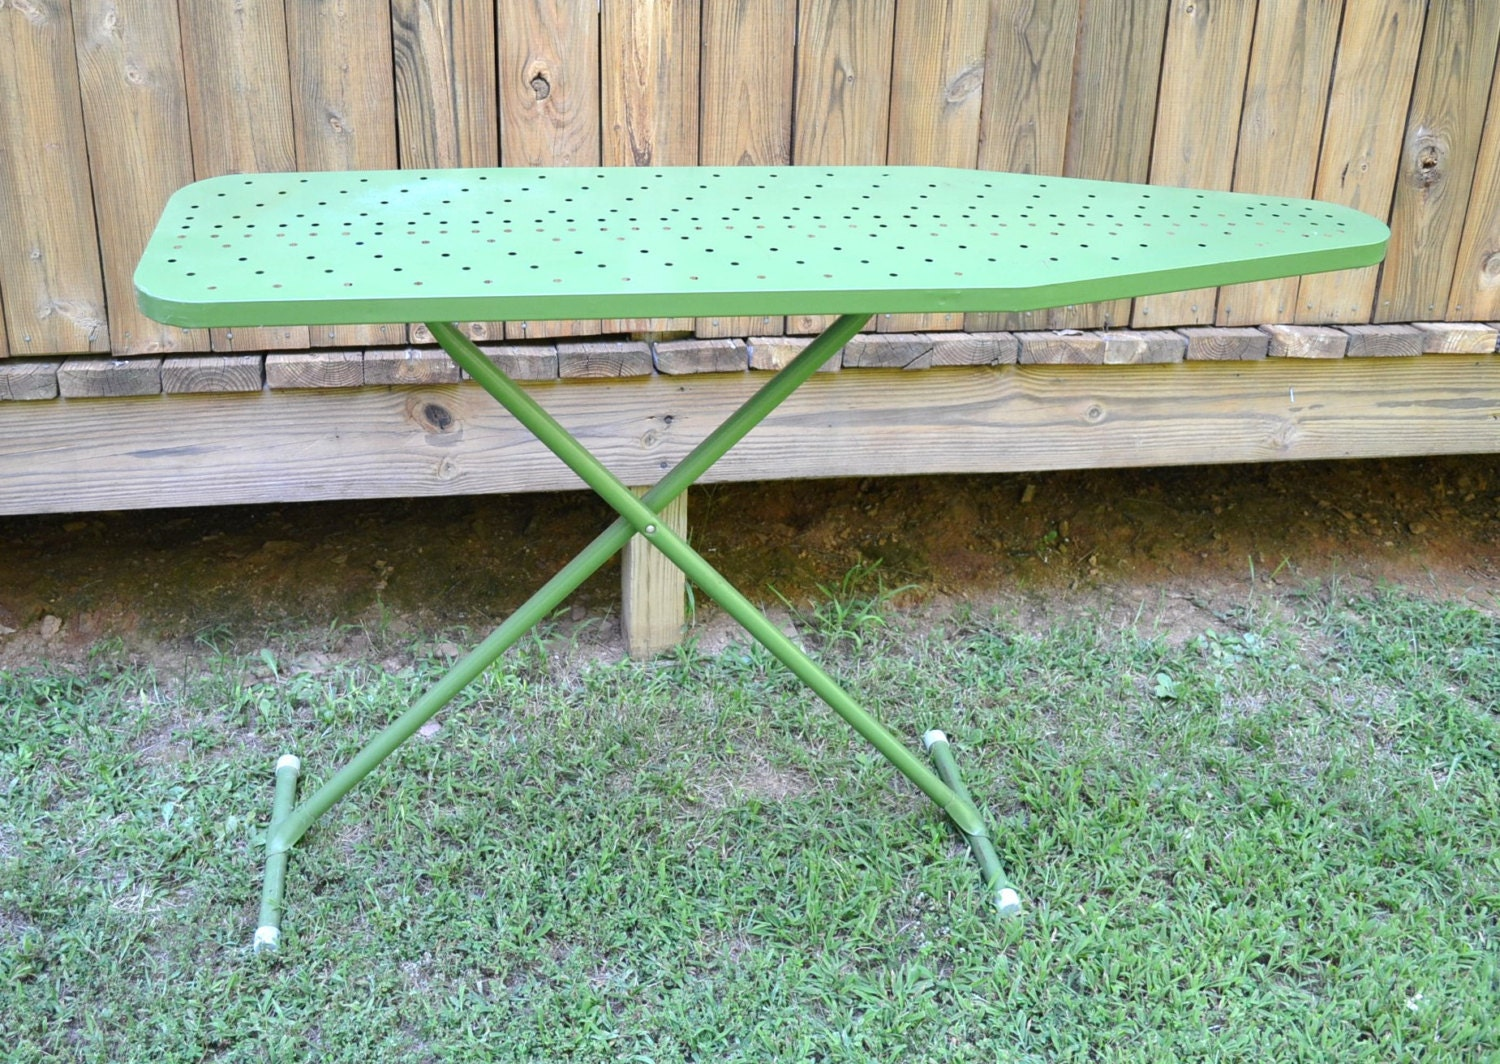 Vintage Ironing Board Metal Green Retro Laundry By